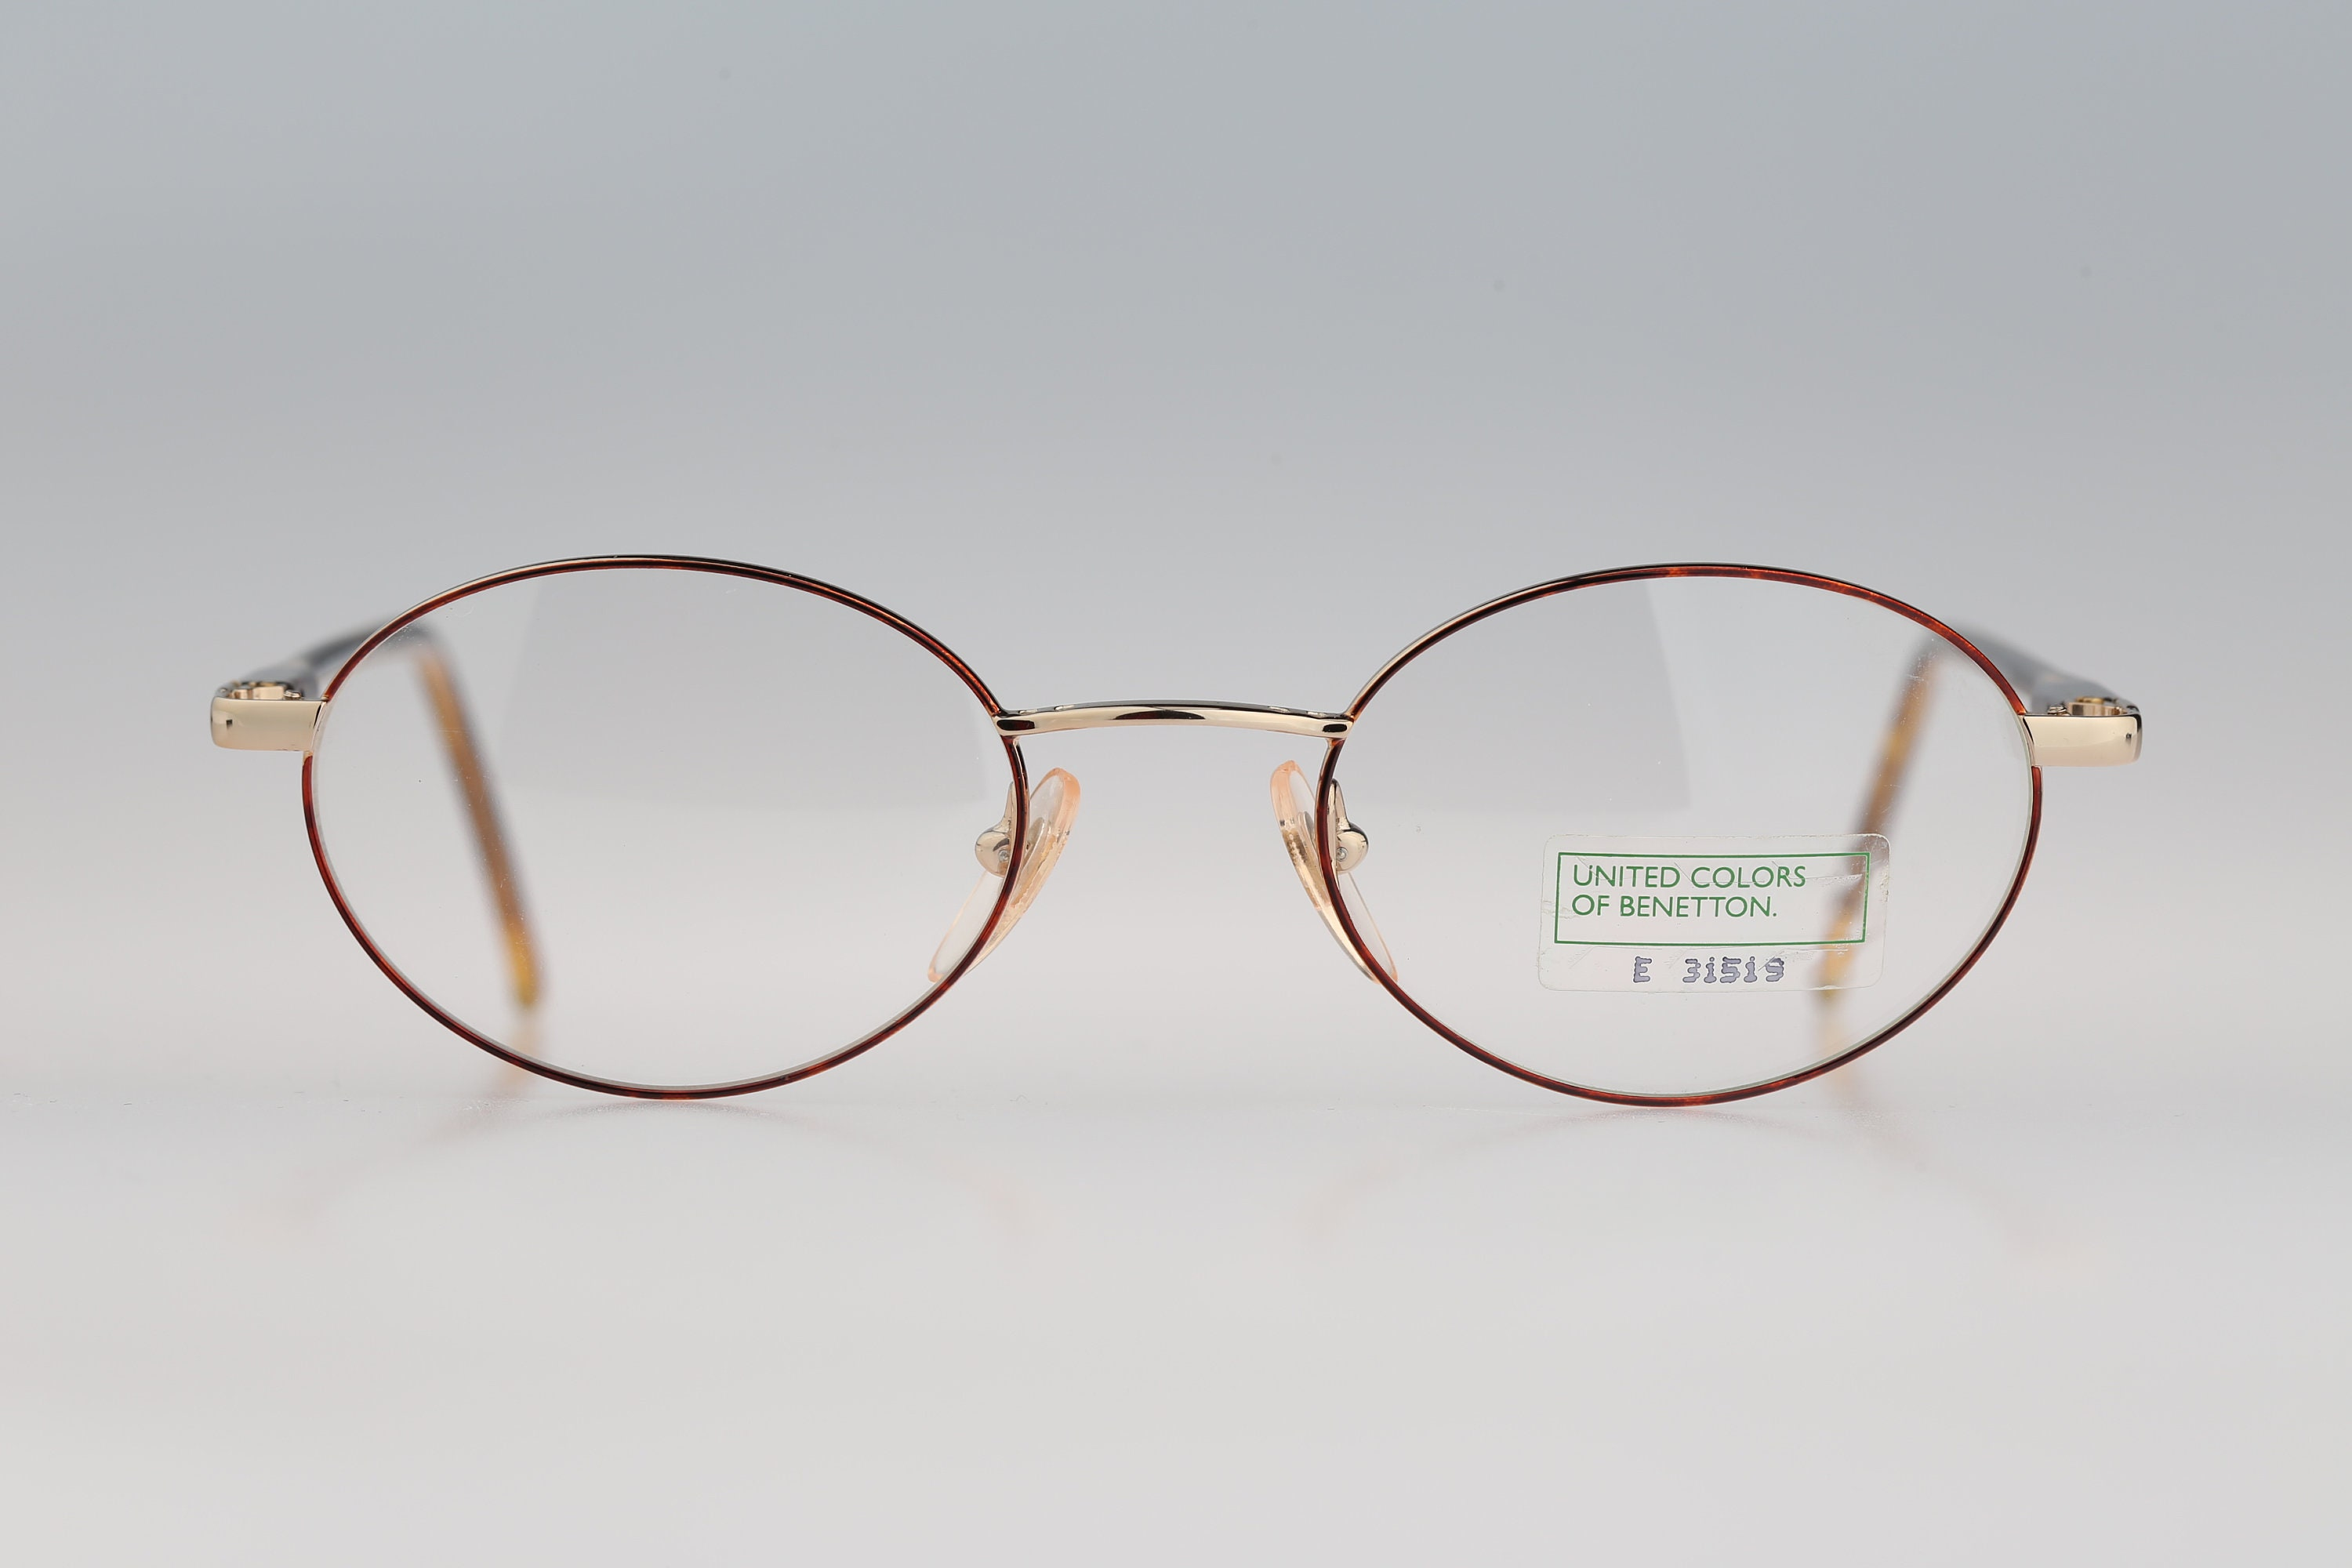 Benetton UCB A94 13M Vintage 90s gold and tortoise small oval